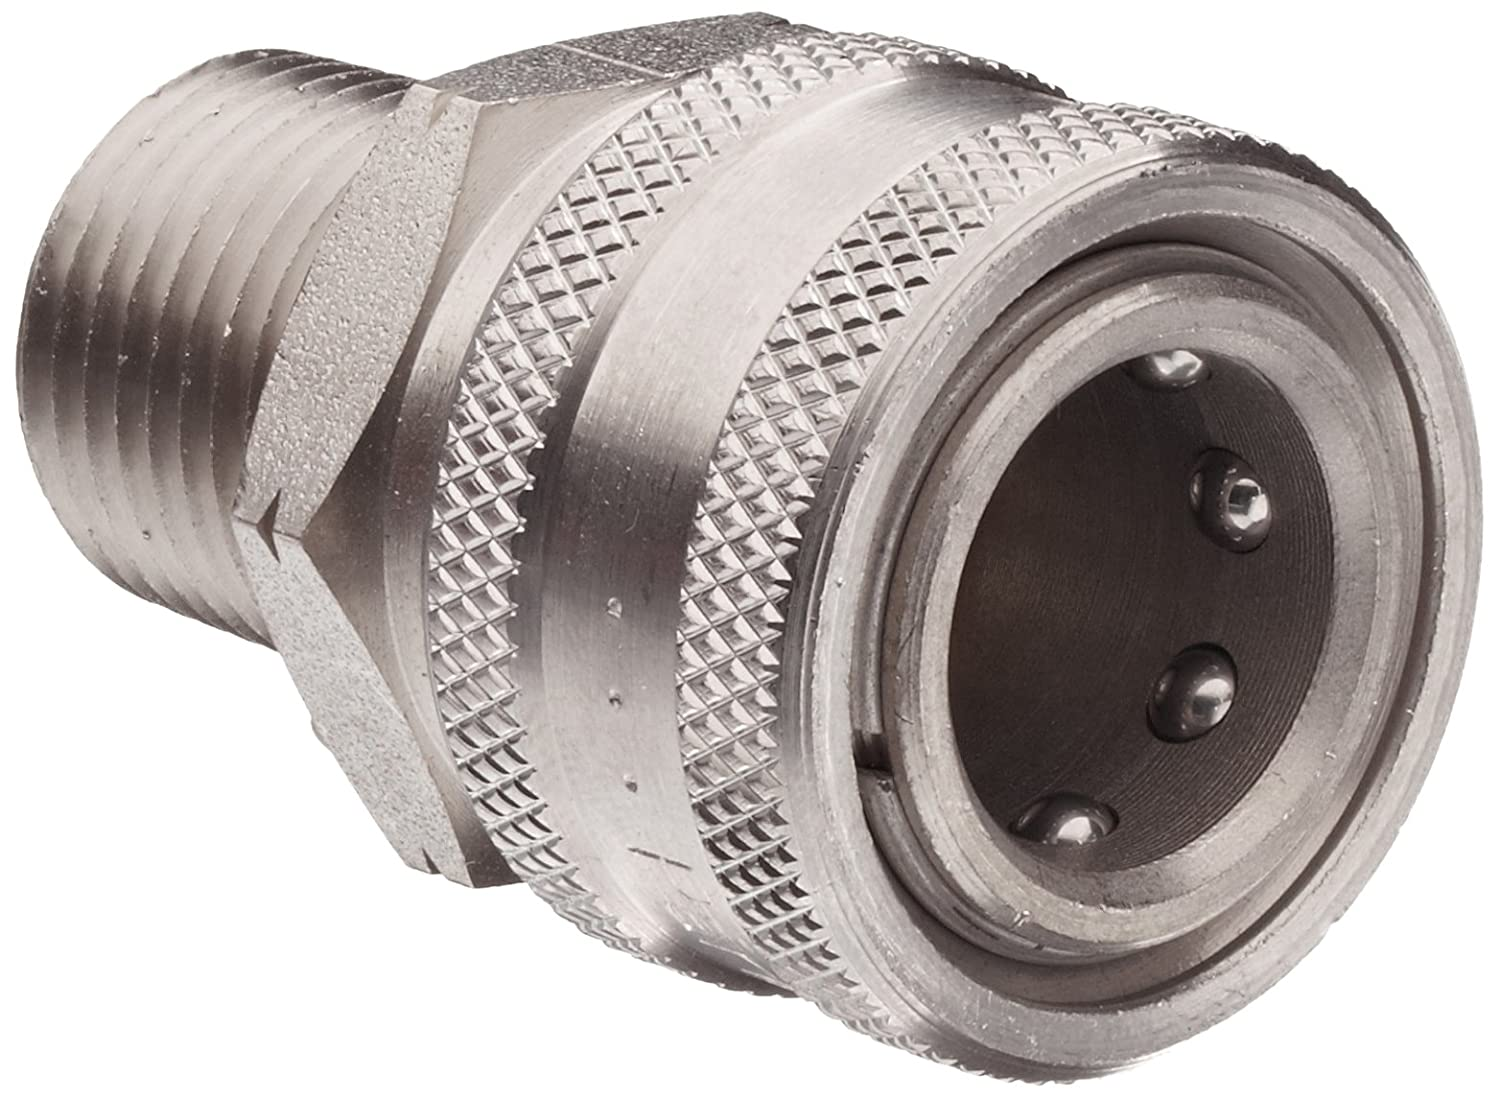 Dixon STMC4SS Stainless Steel 303 Hydraulic Quick-Connect Fitting, Coupler, 1/2 Male Coupling, 1/2-14 Straight Thread велосипед forward quadro 1 0 2017